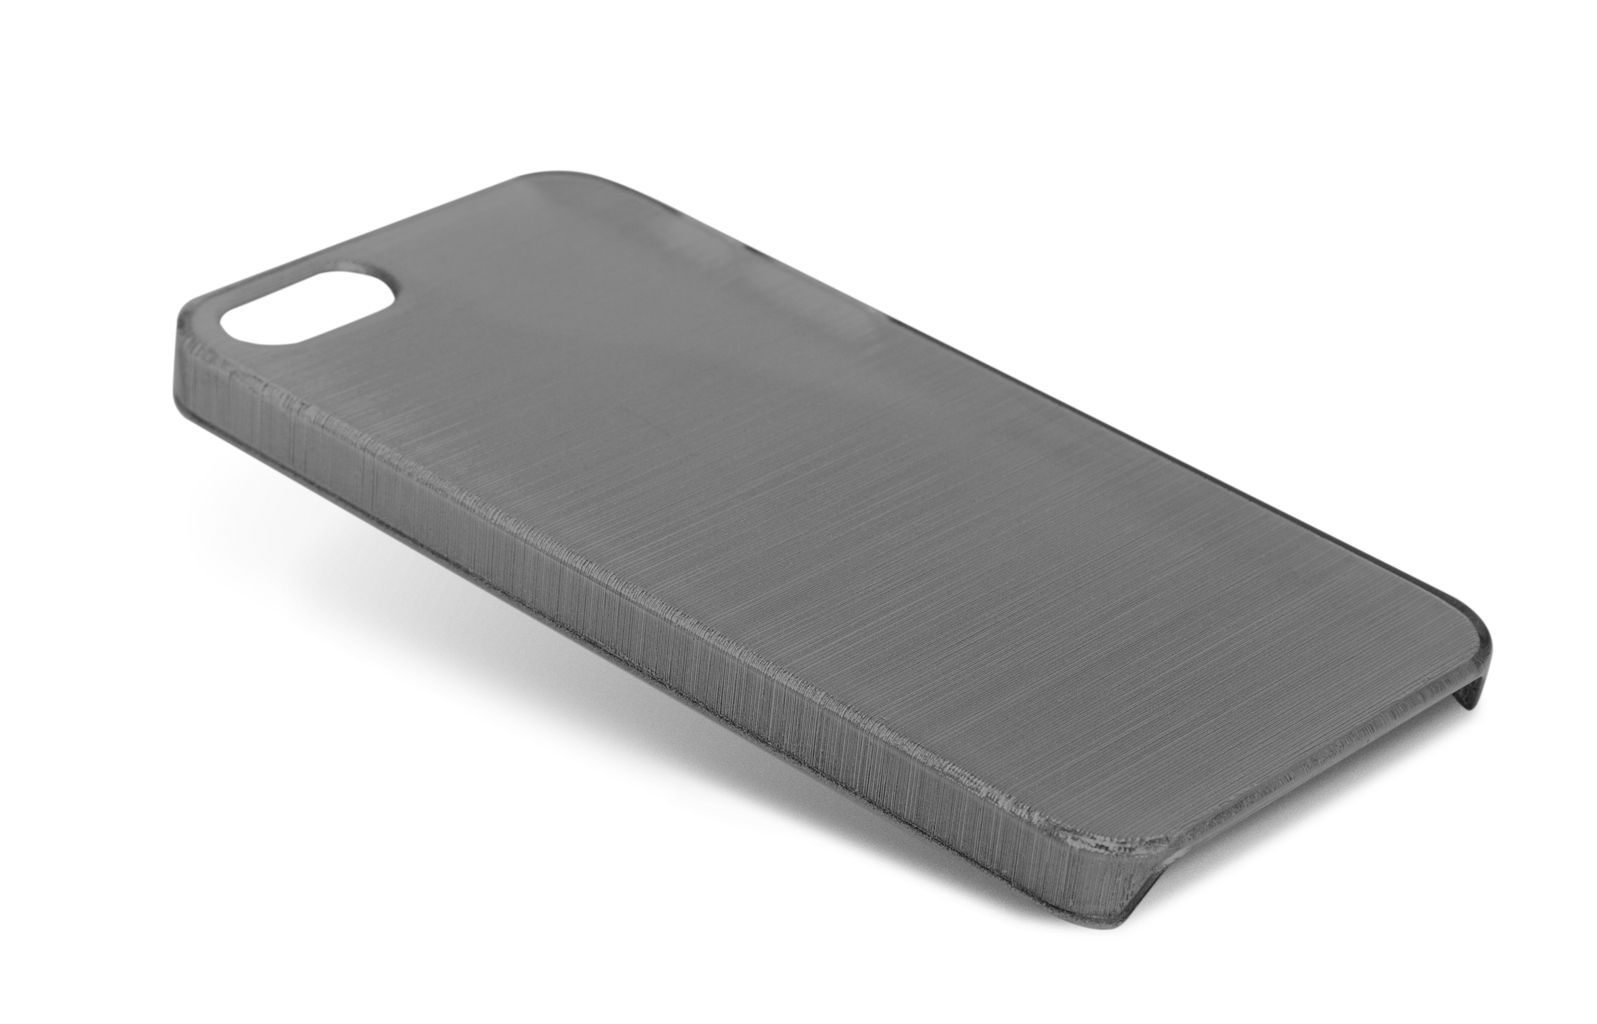 Husa Vetter Ultra Tough Brushed Metal Design pentru iPhone 5S, iPhone 5